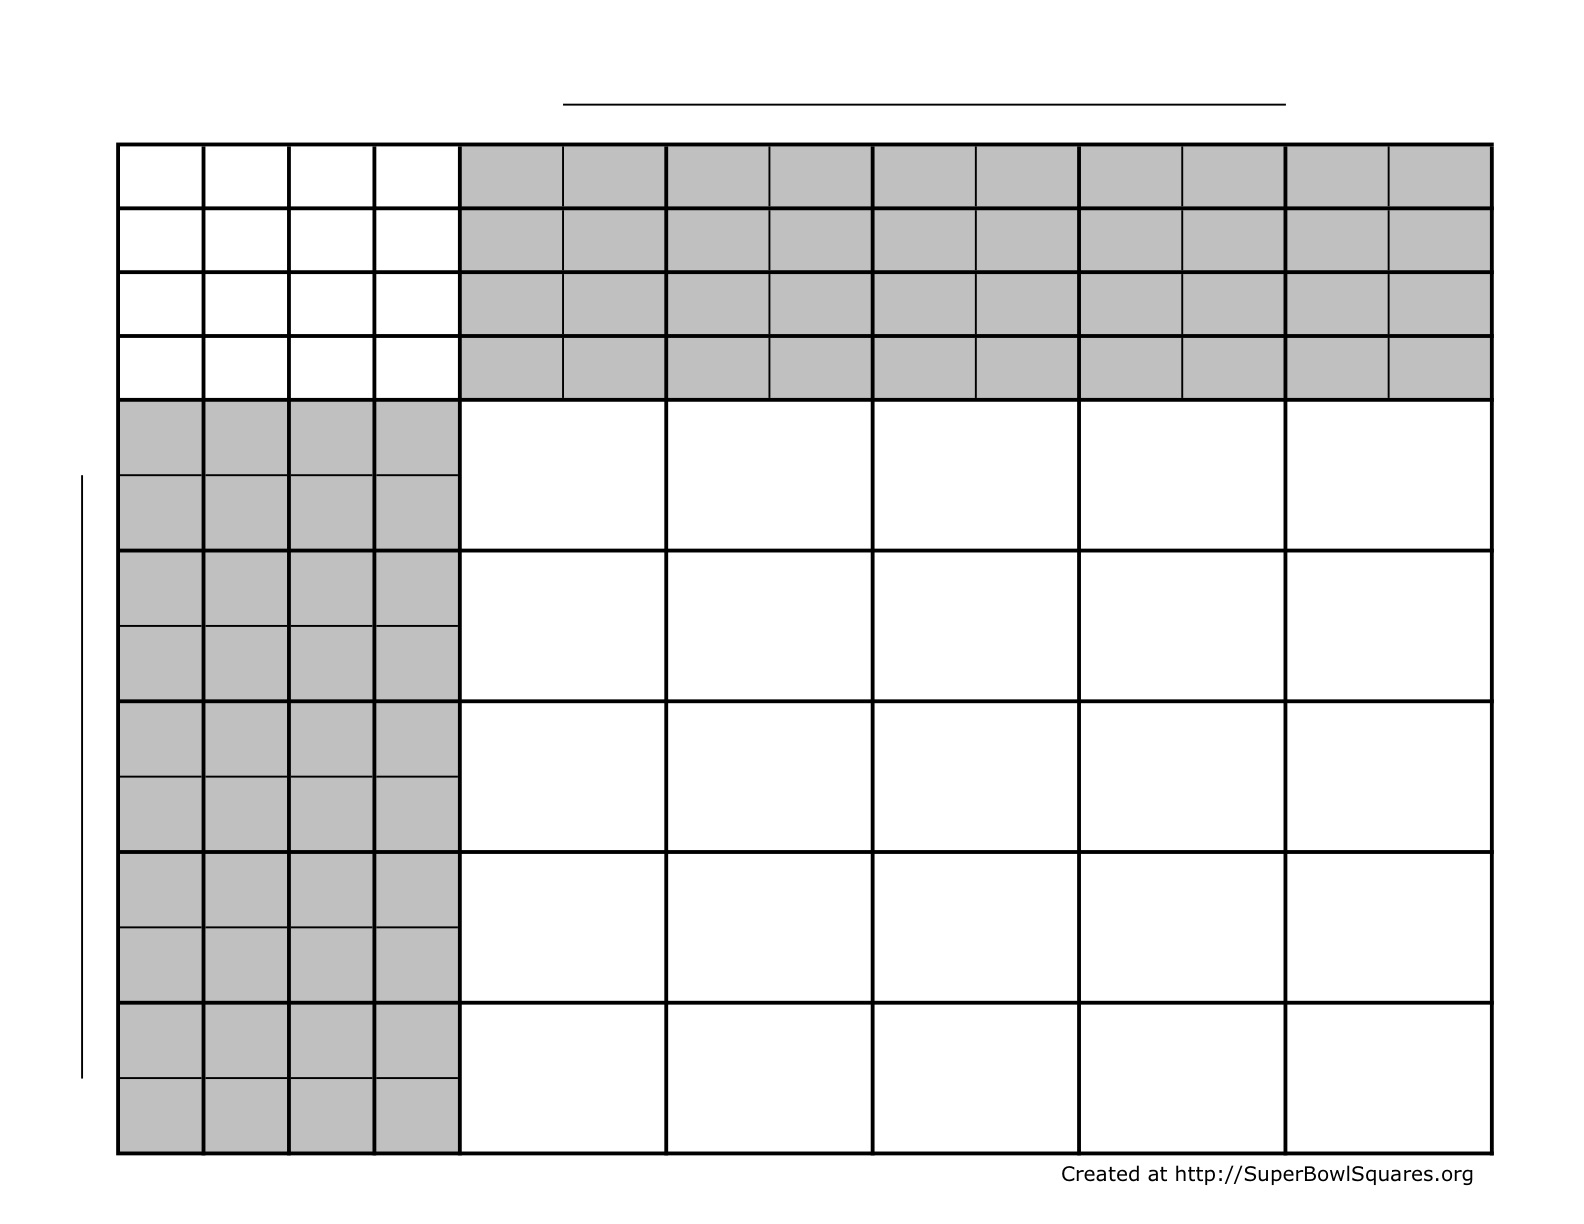 5 x 5 Football Squares (25 Squares) with 4 sets of numbers